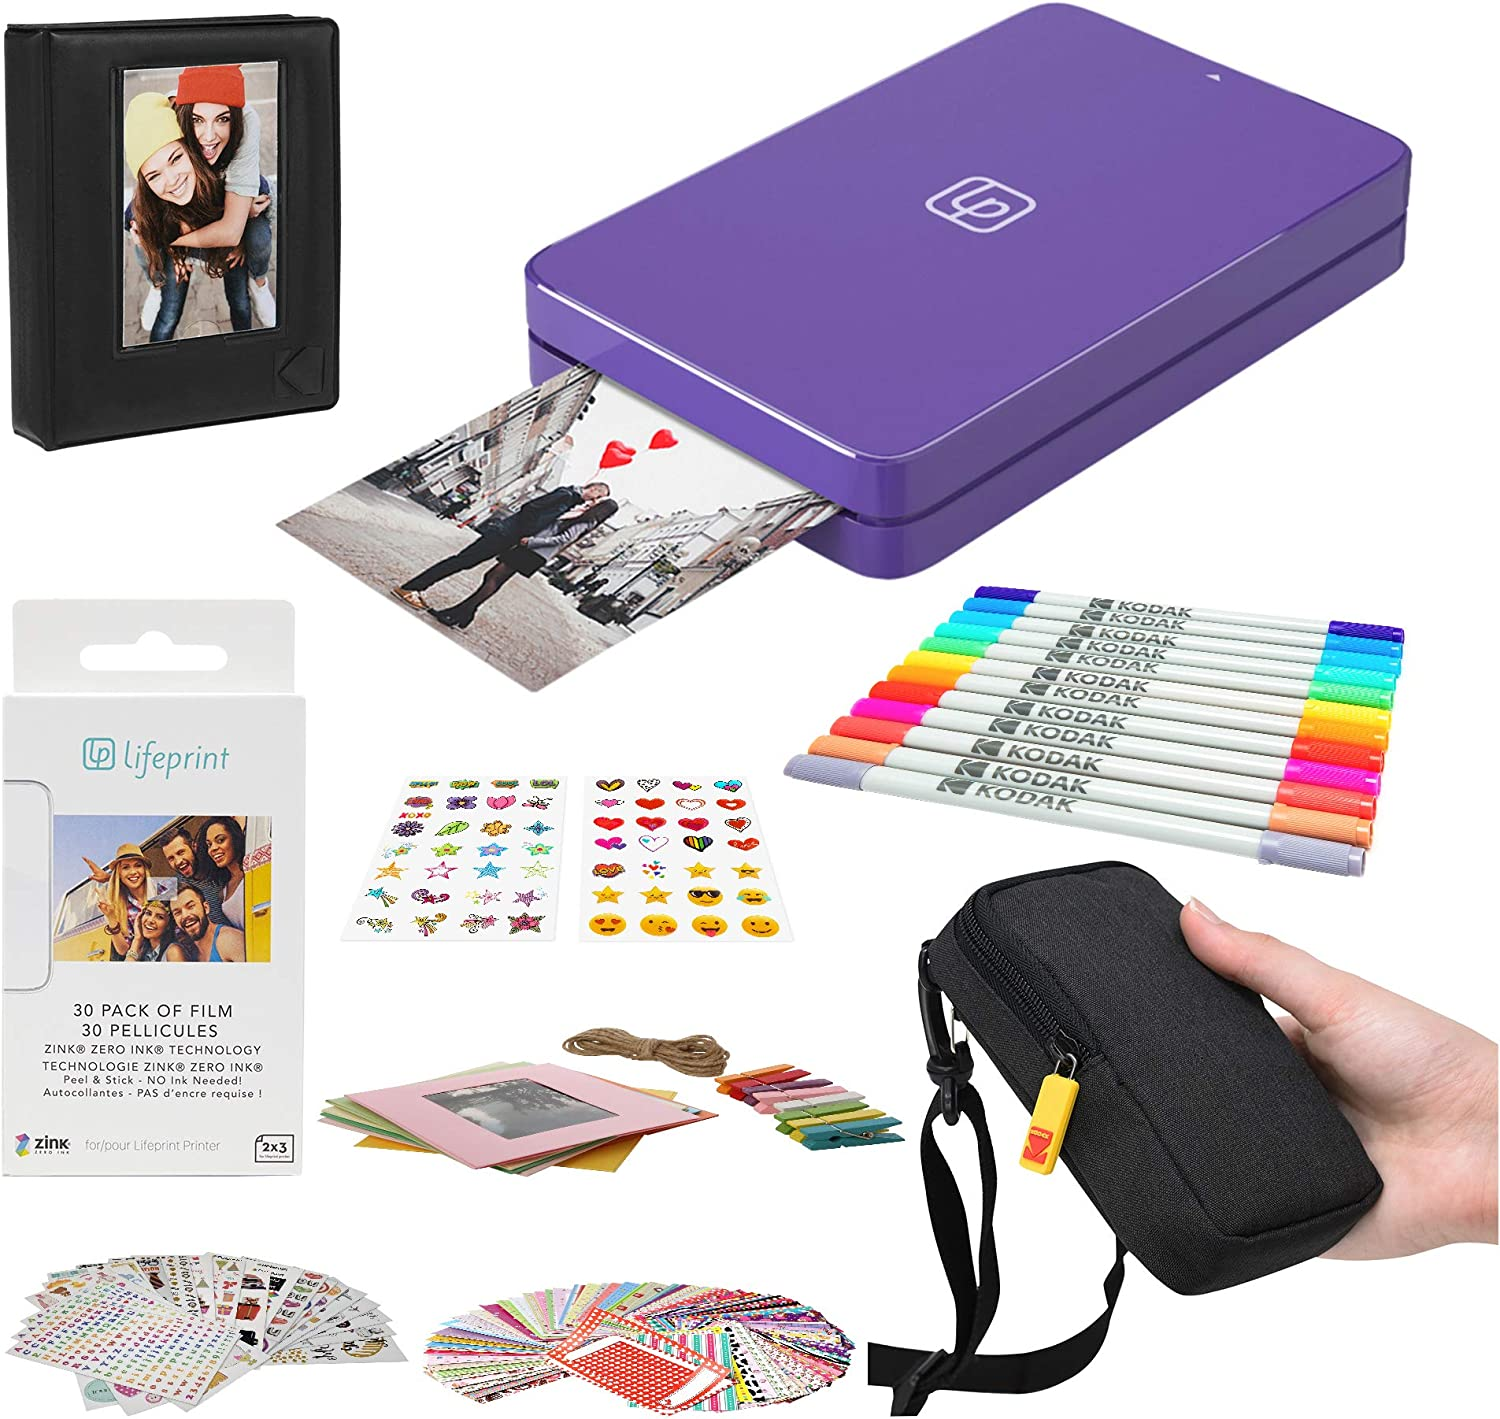 Lifeprint 2x3 Portable Photo and Video Printer (Purple) Stickers Bundle